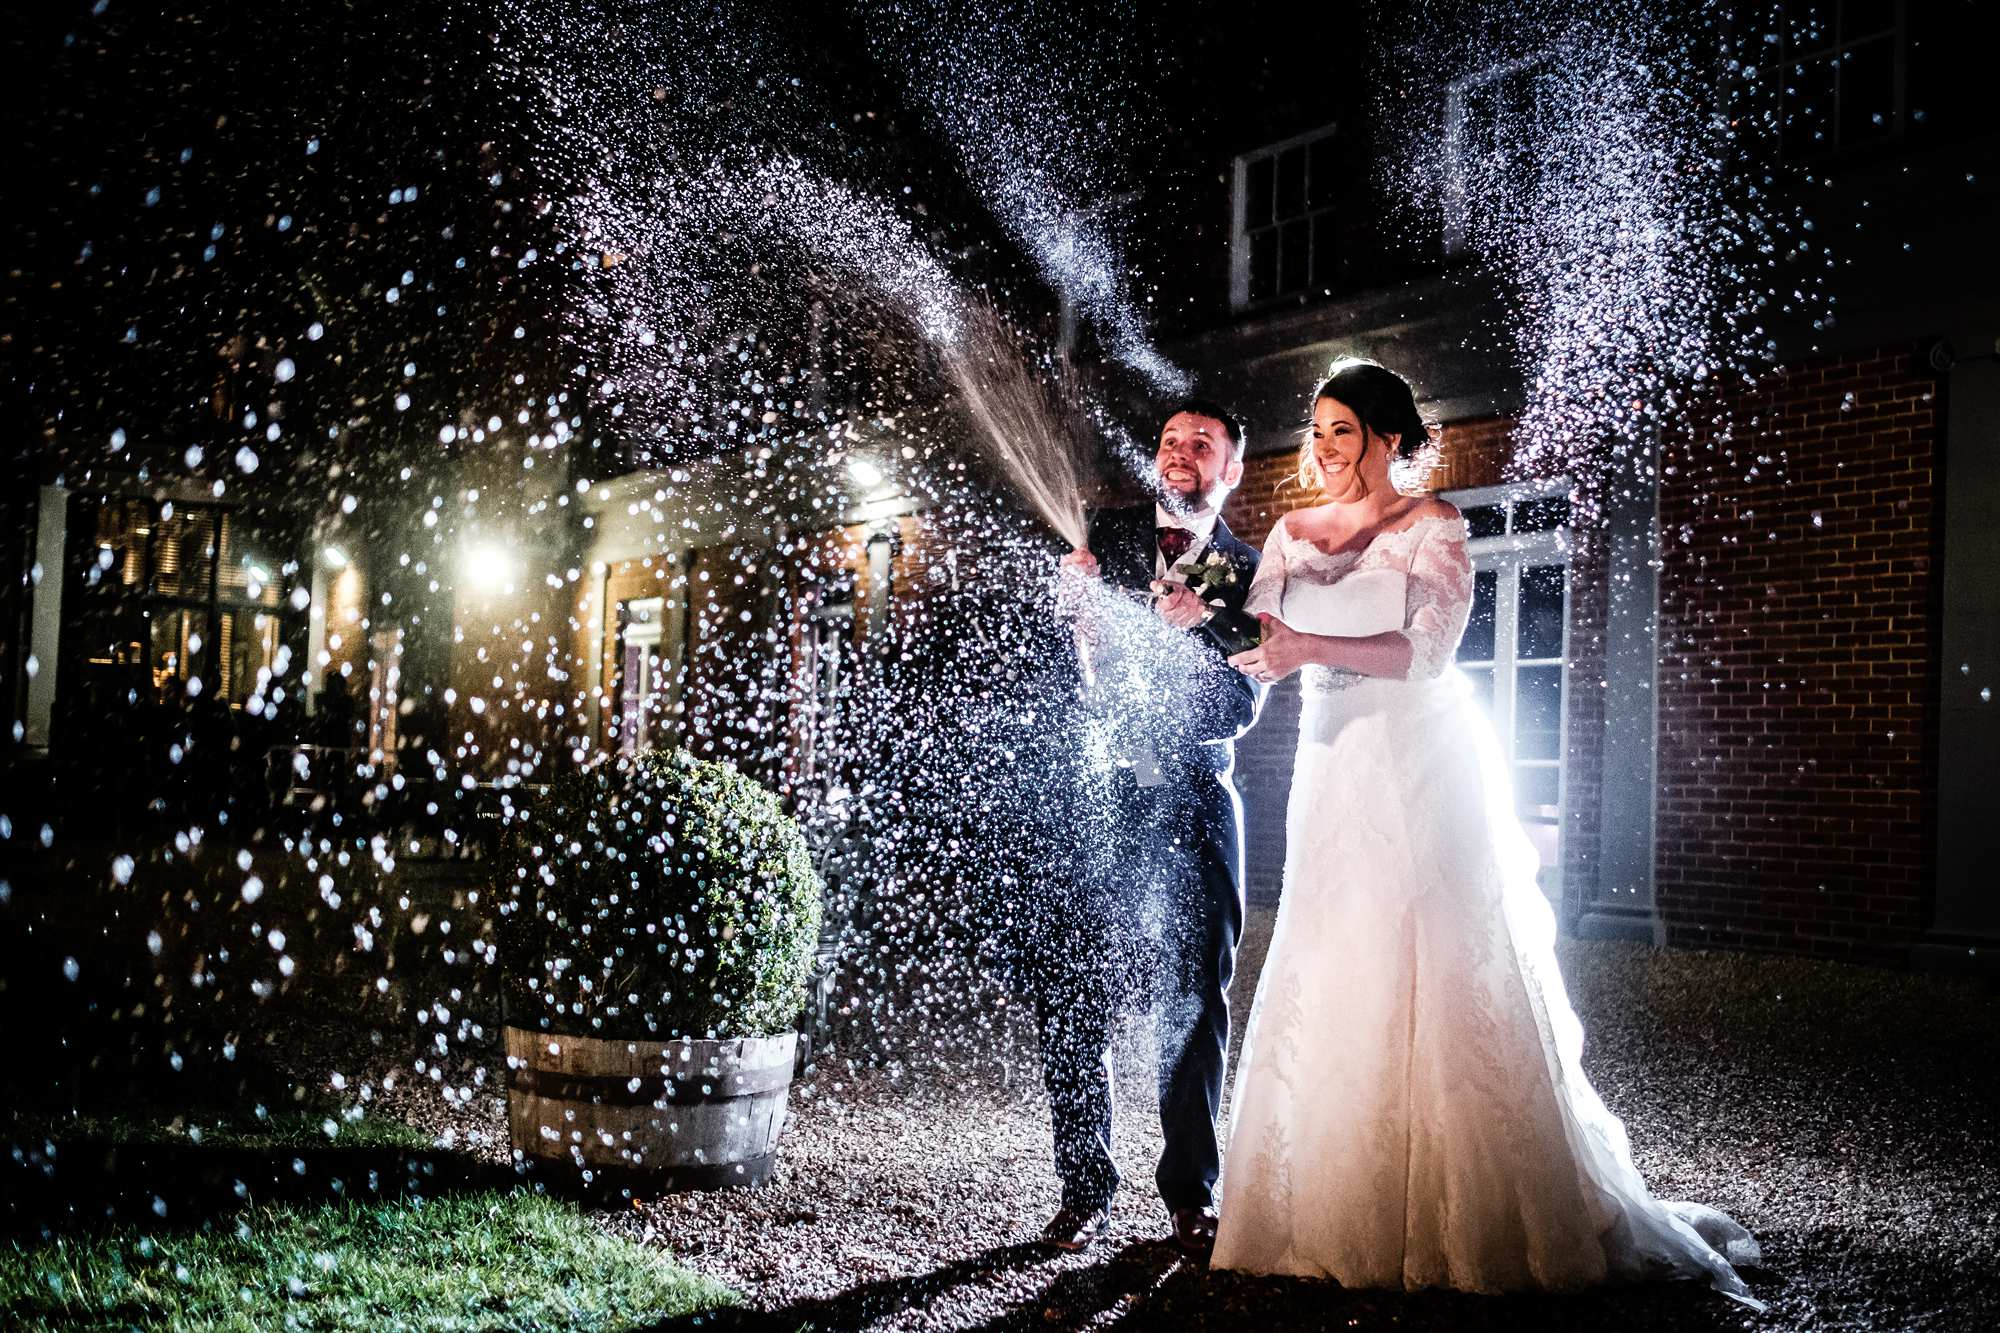 Bride and Groom spray champagne at their wedding at Highfield Park in Hampshire